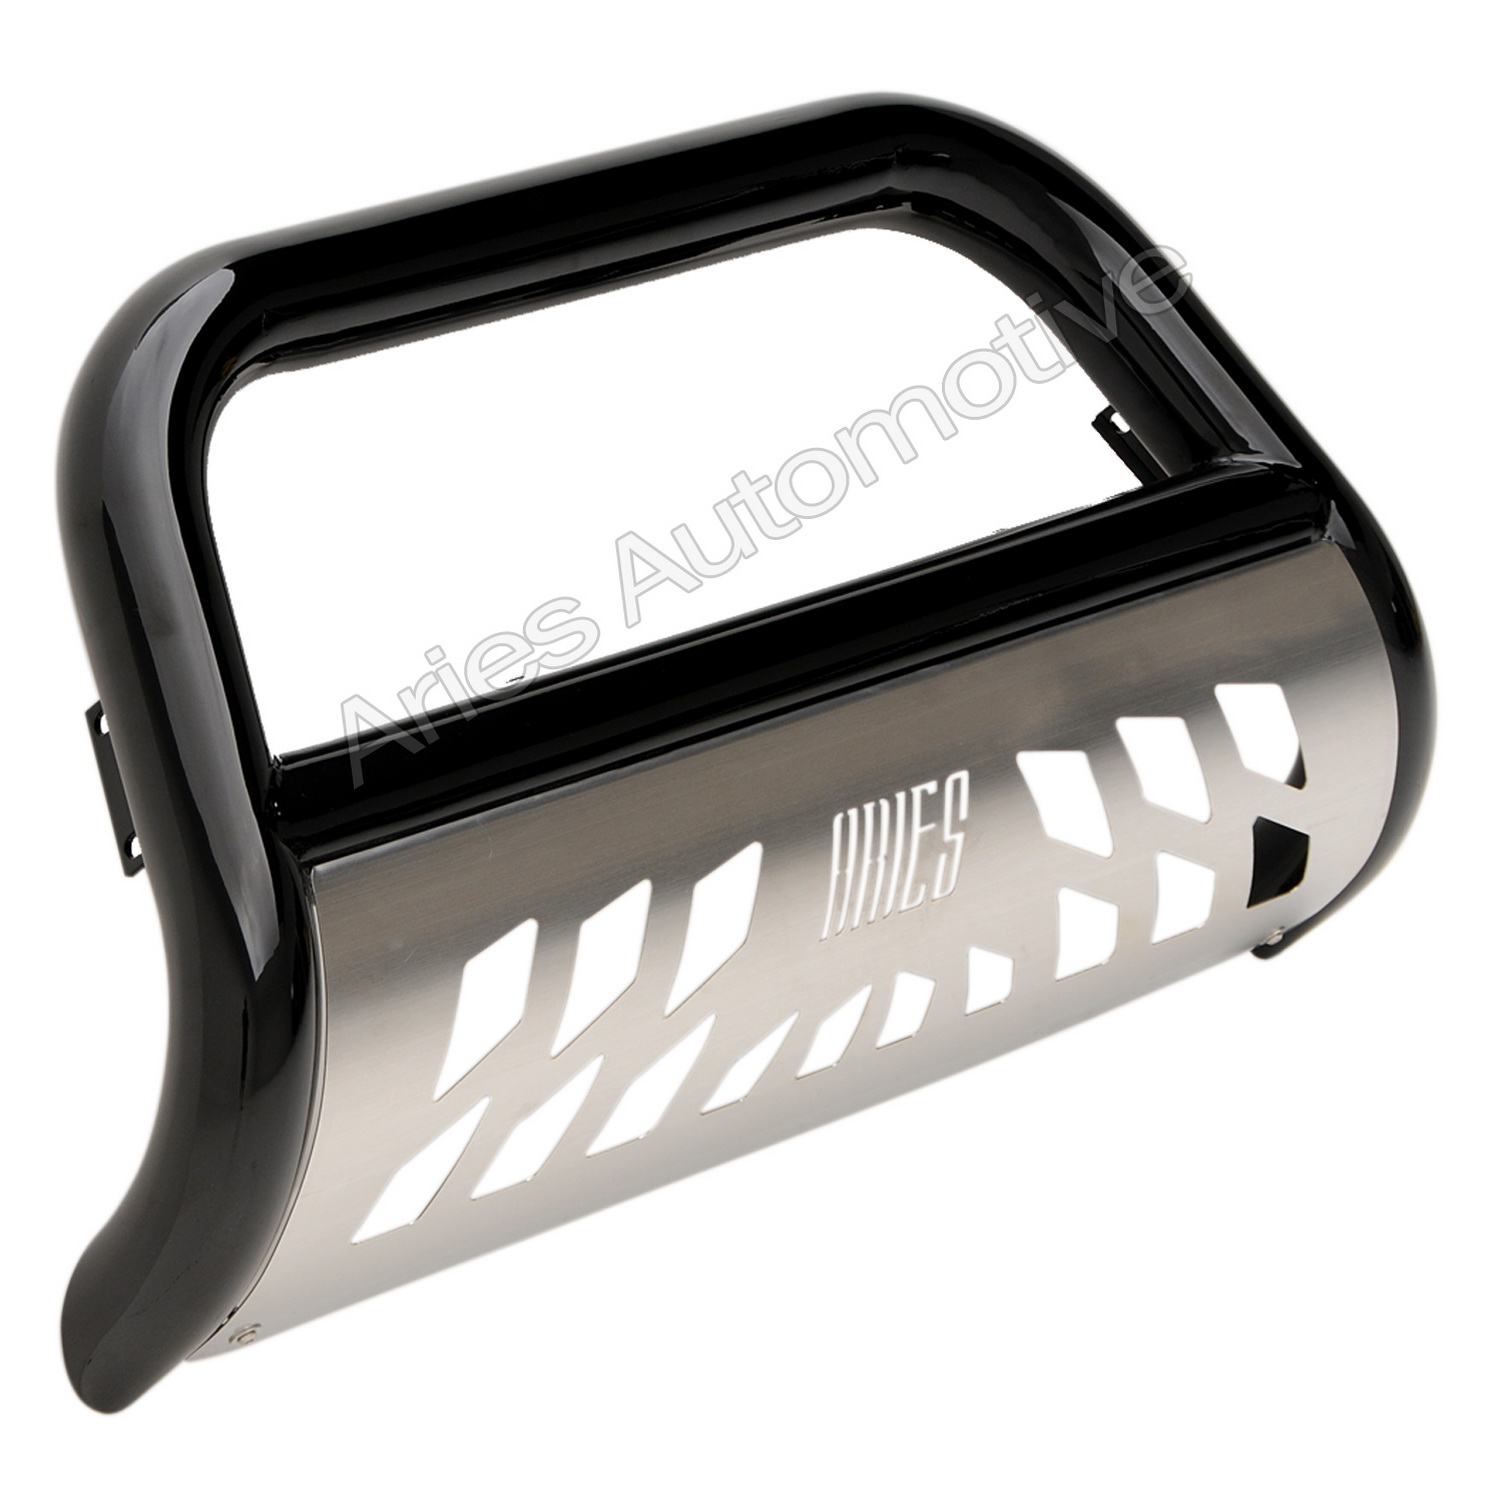 Aries Offroad B35-2007 Aries Bull Bar Fits 08-10 Highlander